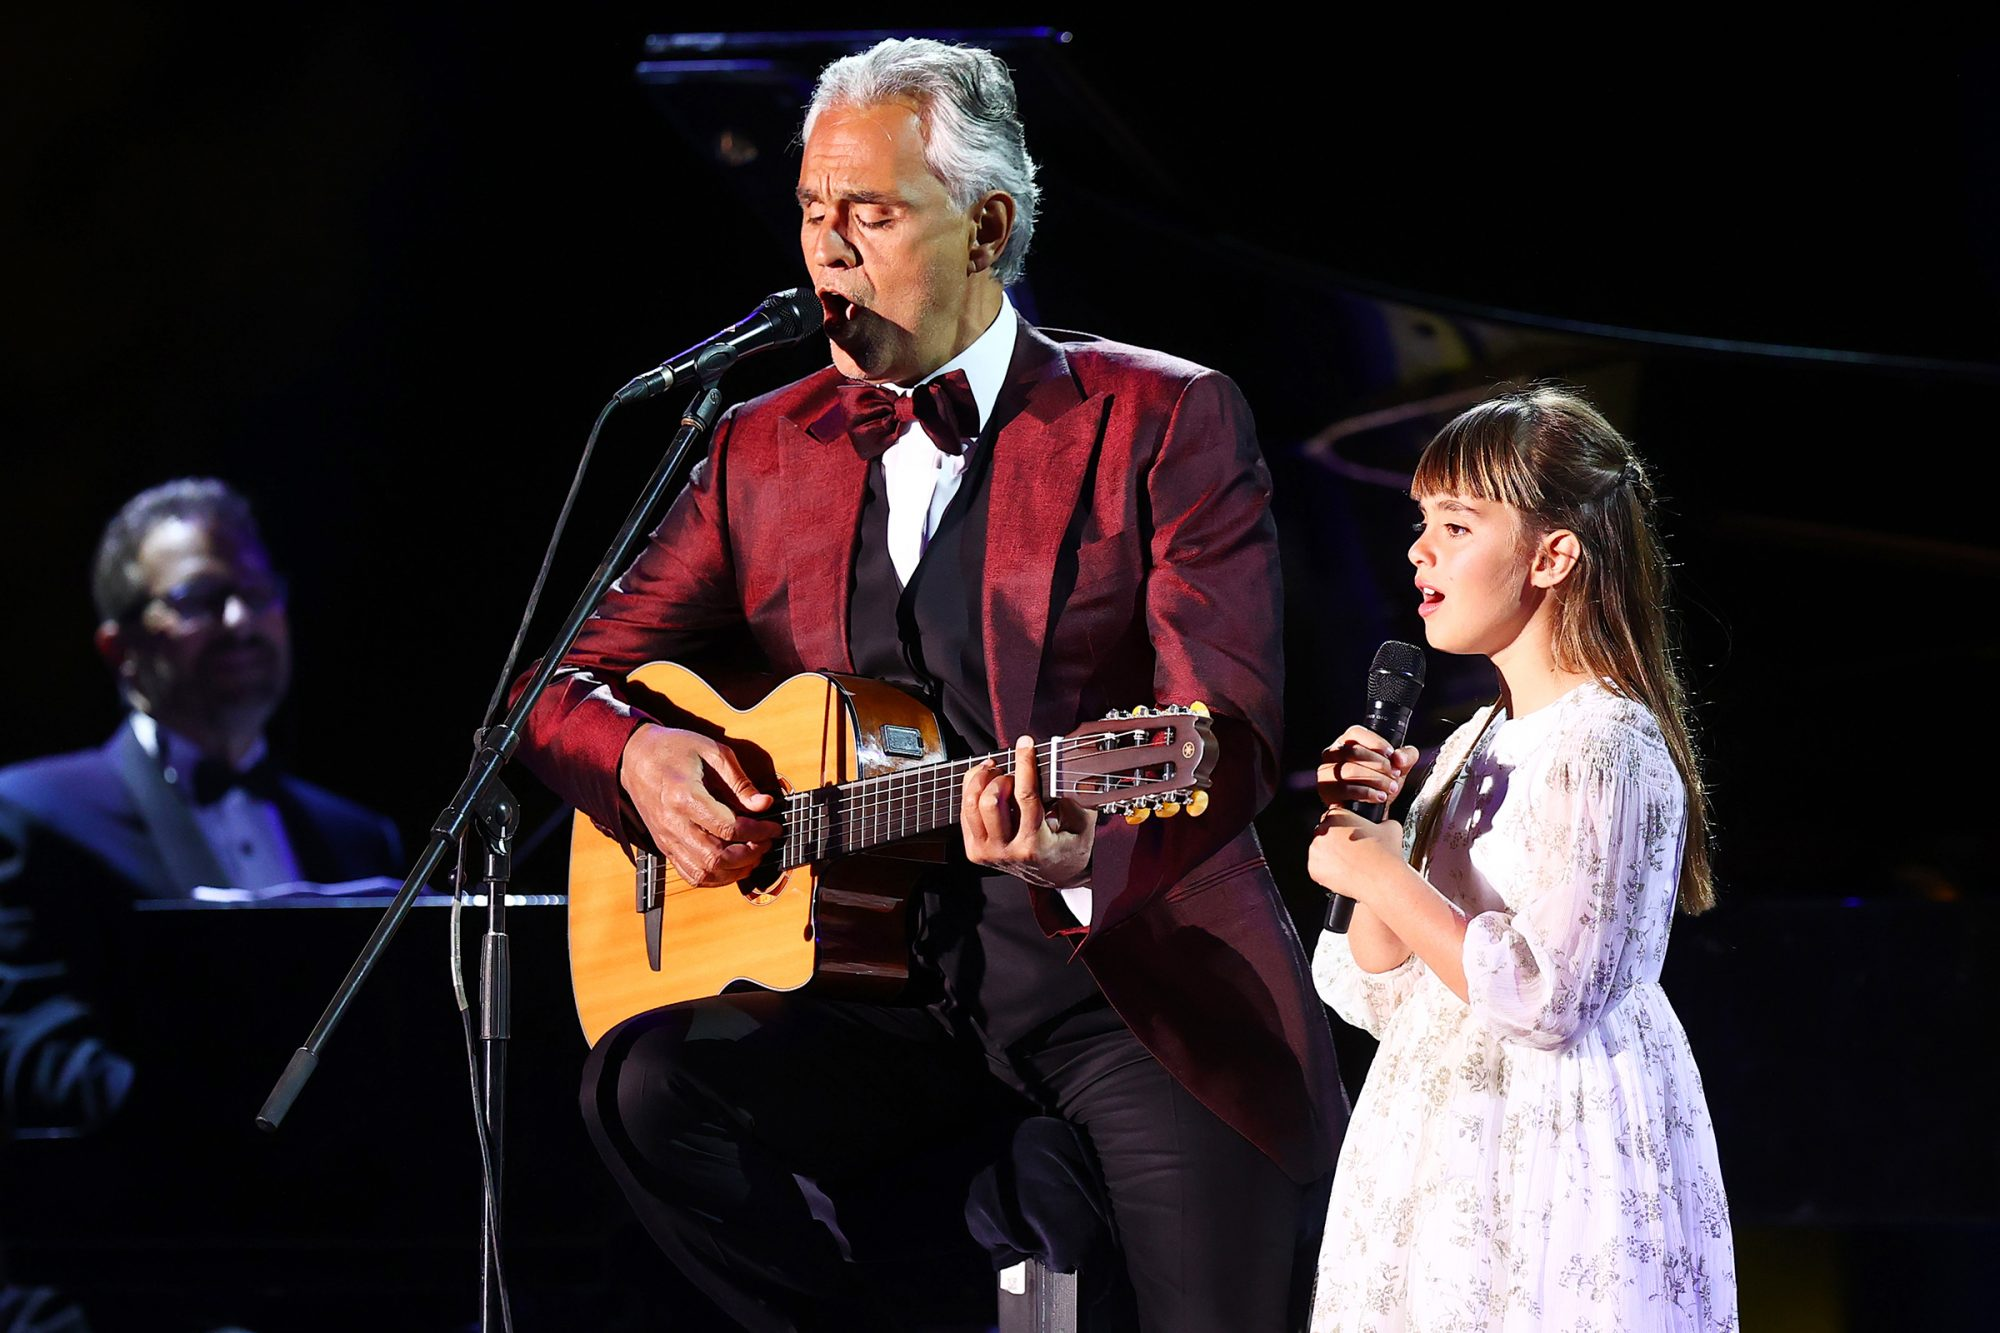 Andrea Bocelli performs in concert with his daughter Virginia Bocelli on April 08, 2021 at World Heritage Site Hegra in AlUla near Tabuk, Saudi Arabia